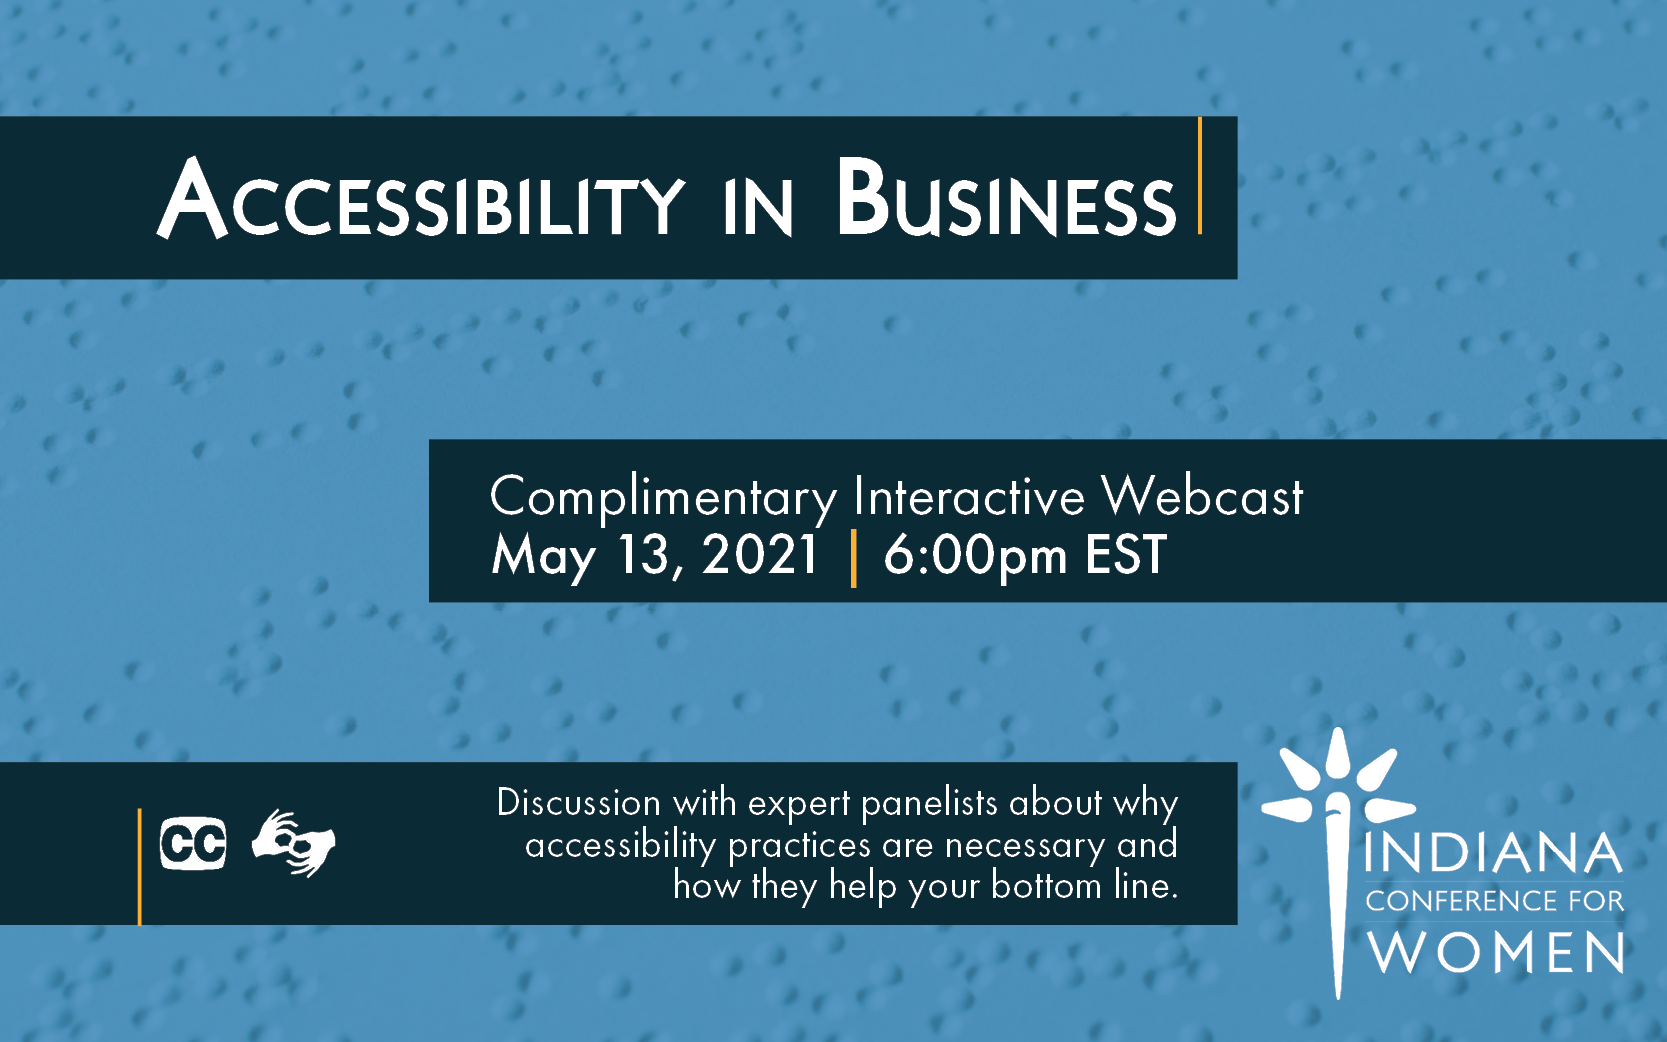 Accessibility in Business – Indiana Conference for Women Interactive Webcast